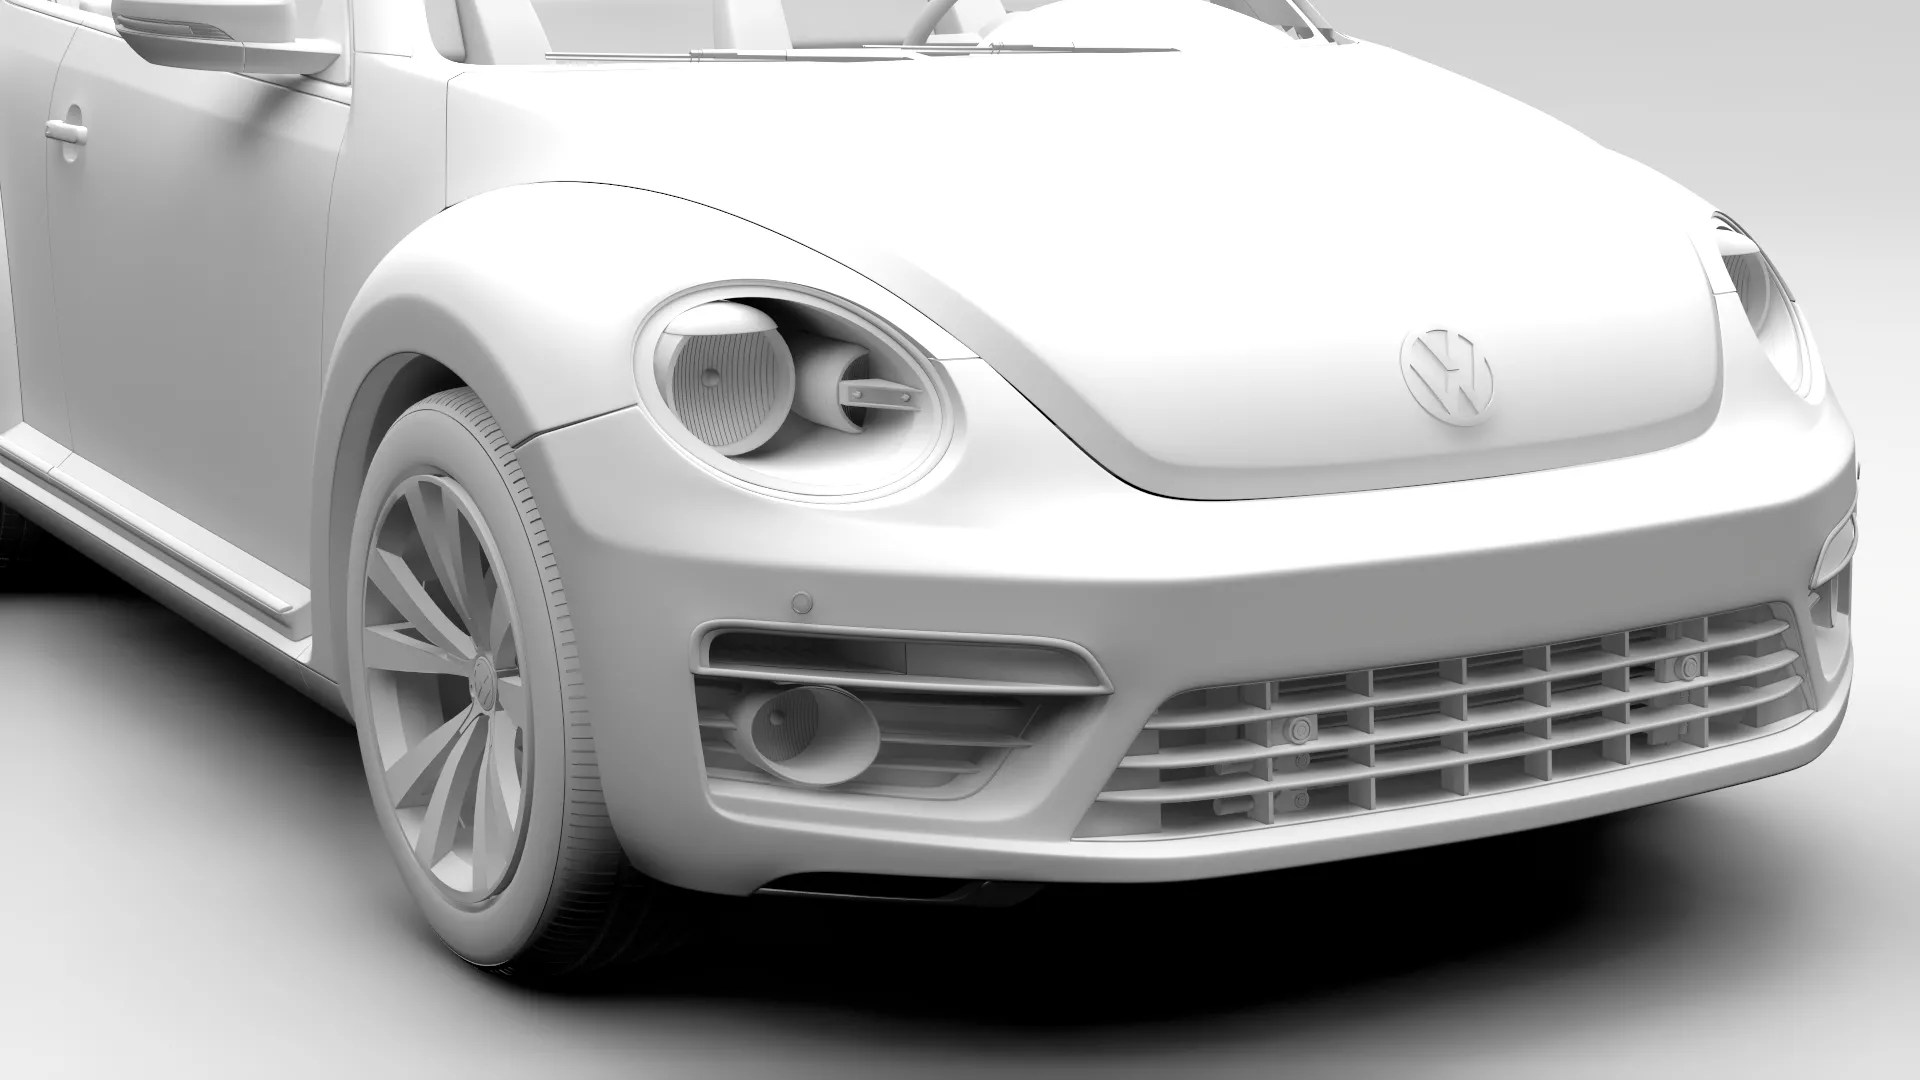 hight resolution of vw beetle cabriolet 2017 3d model 3ds max fbx c4d lwo ma mb hrc xsi obj